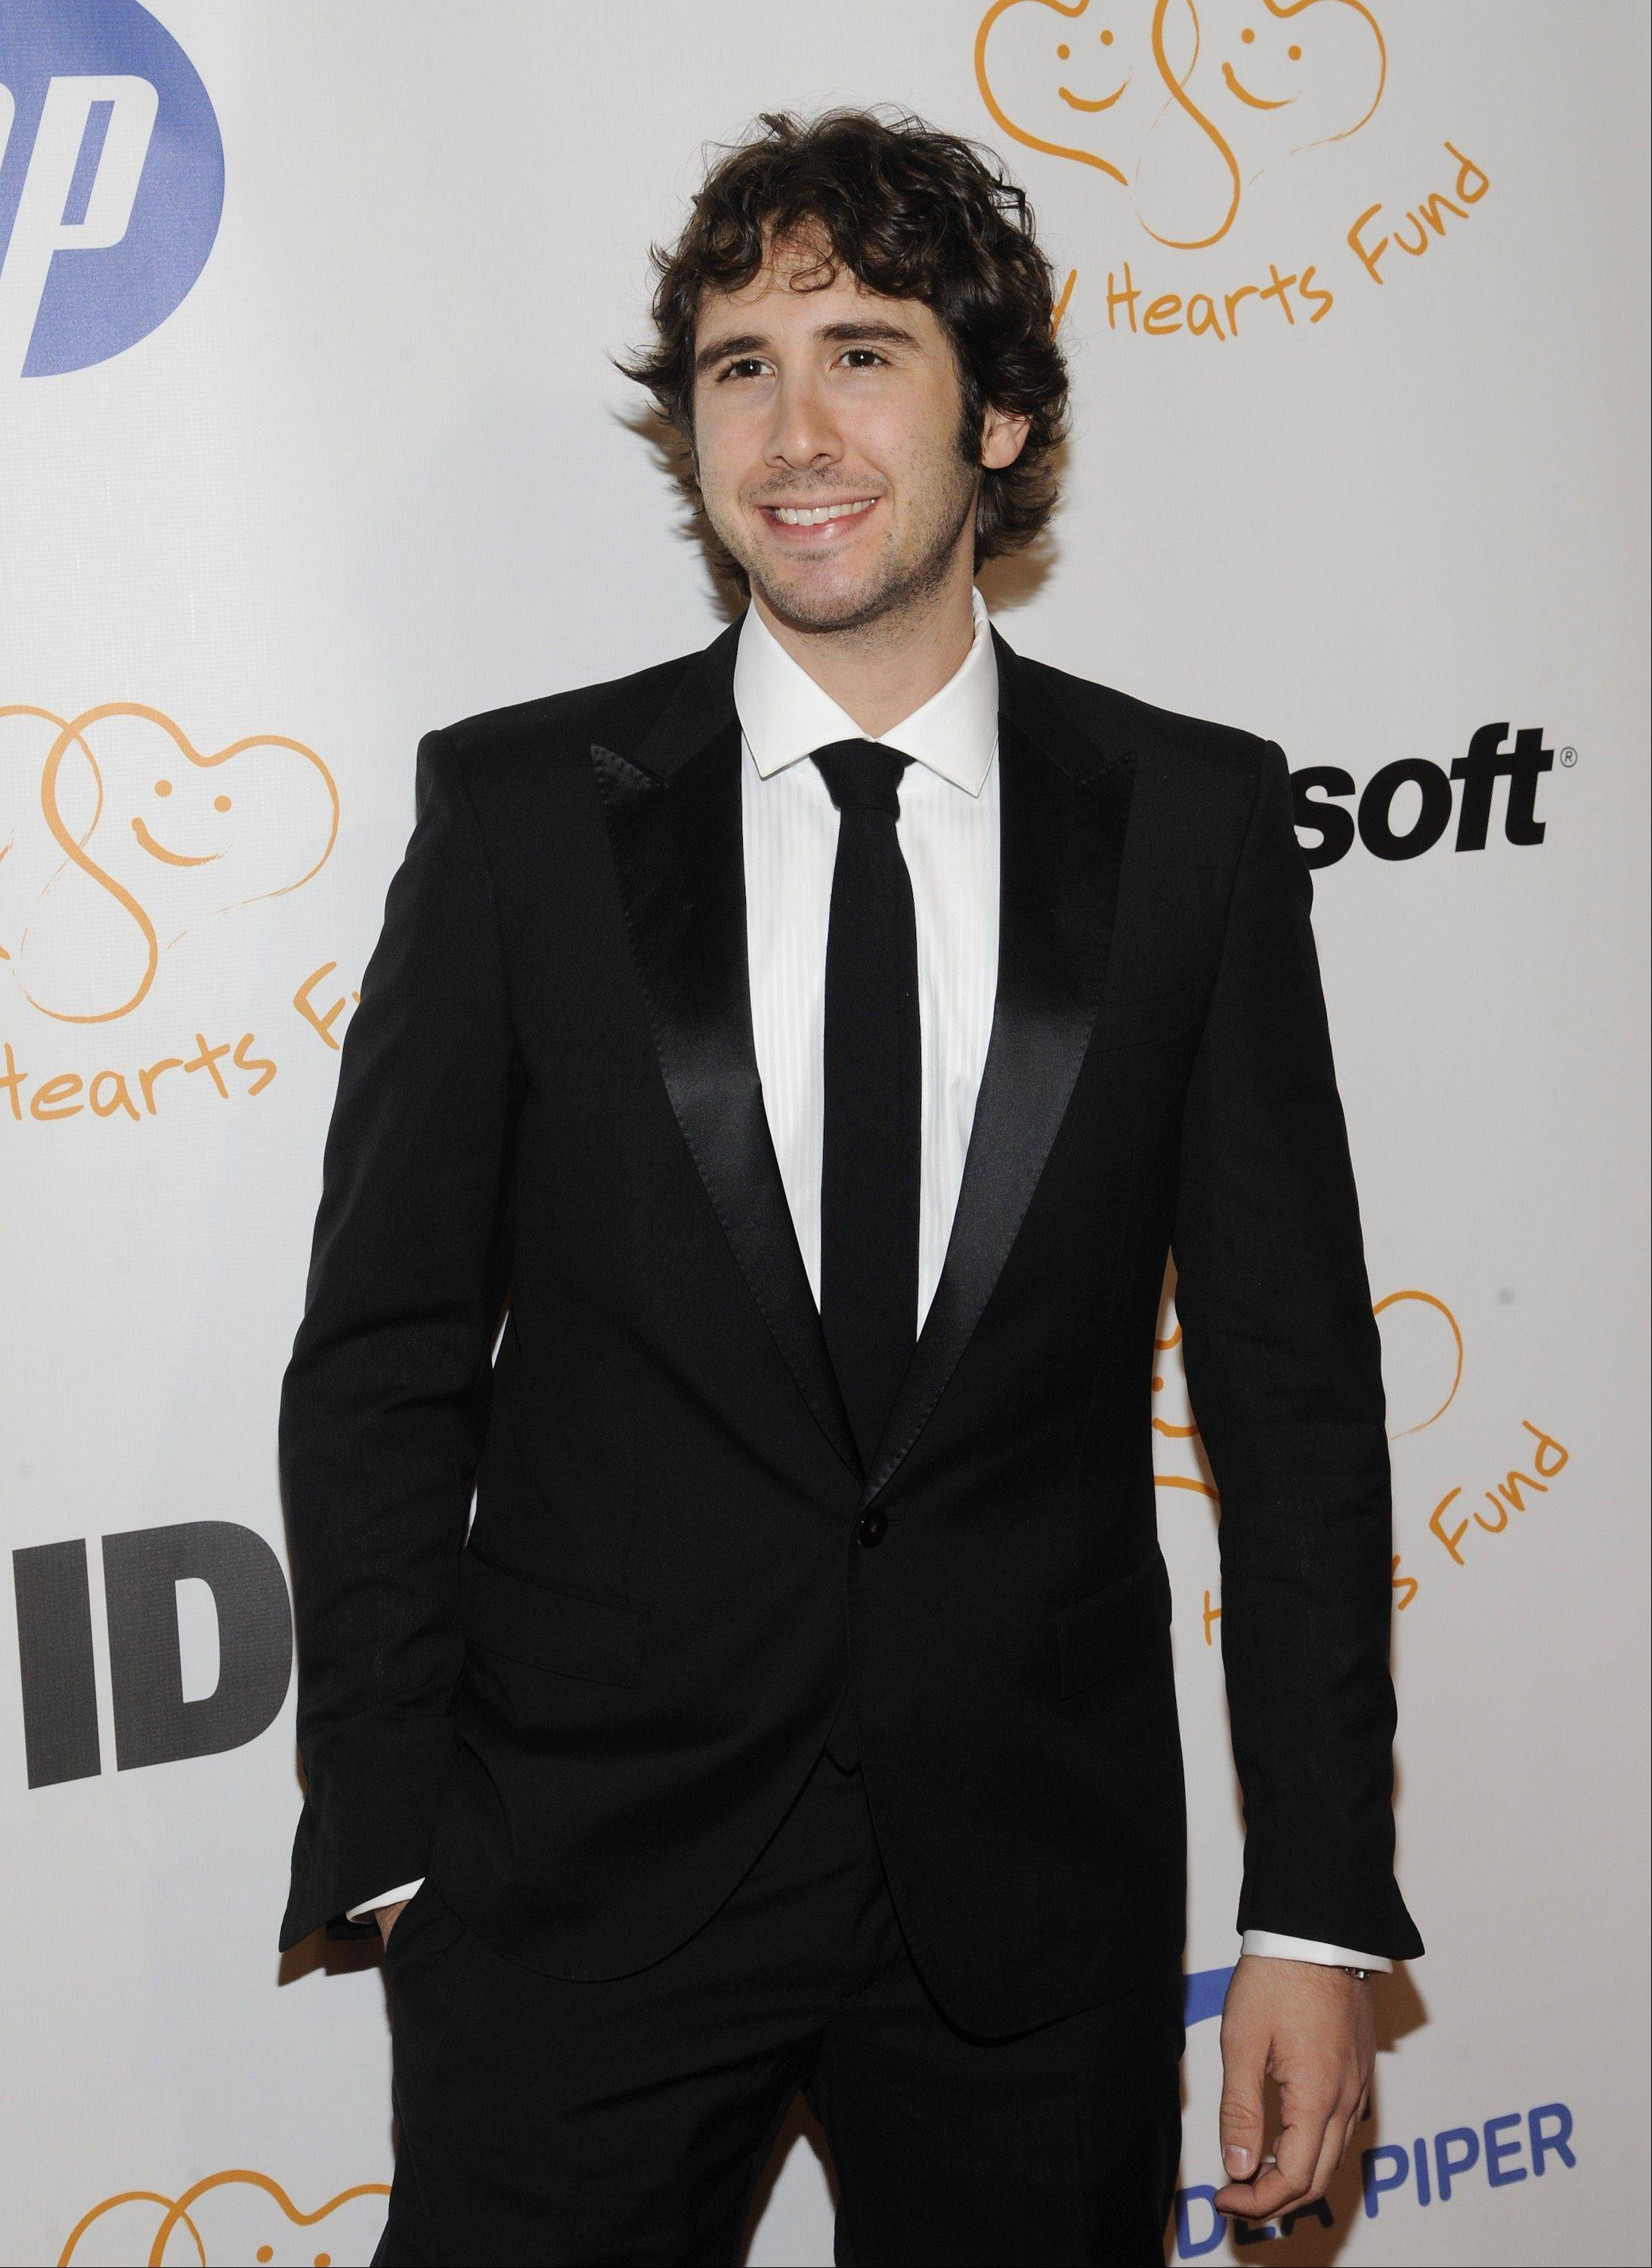 Singer Josh Groban performs in concert Monday in an HD screening shown in area movie theaters.